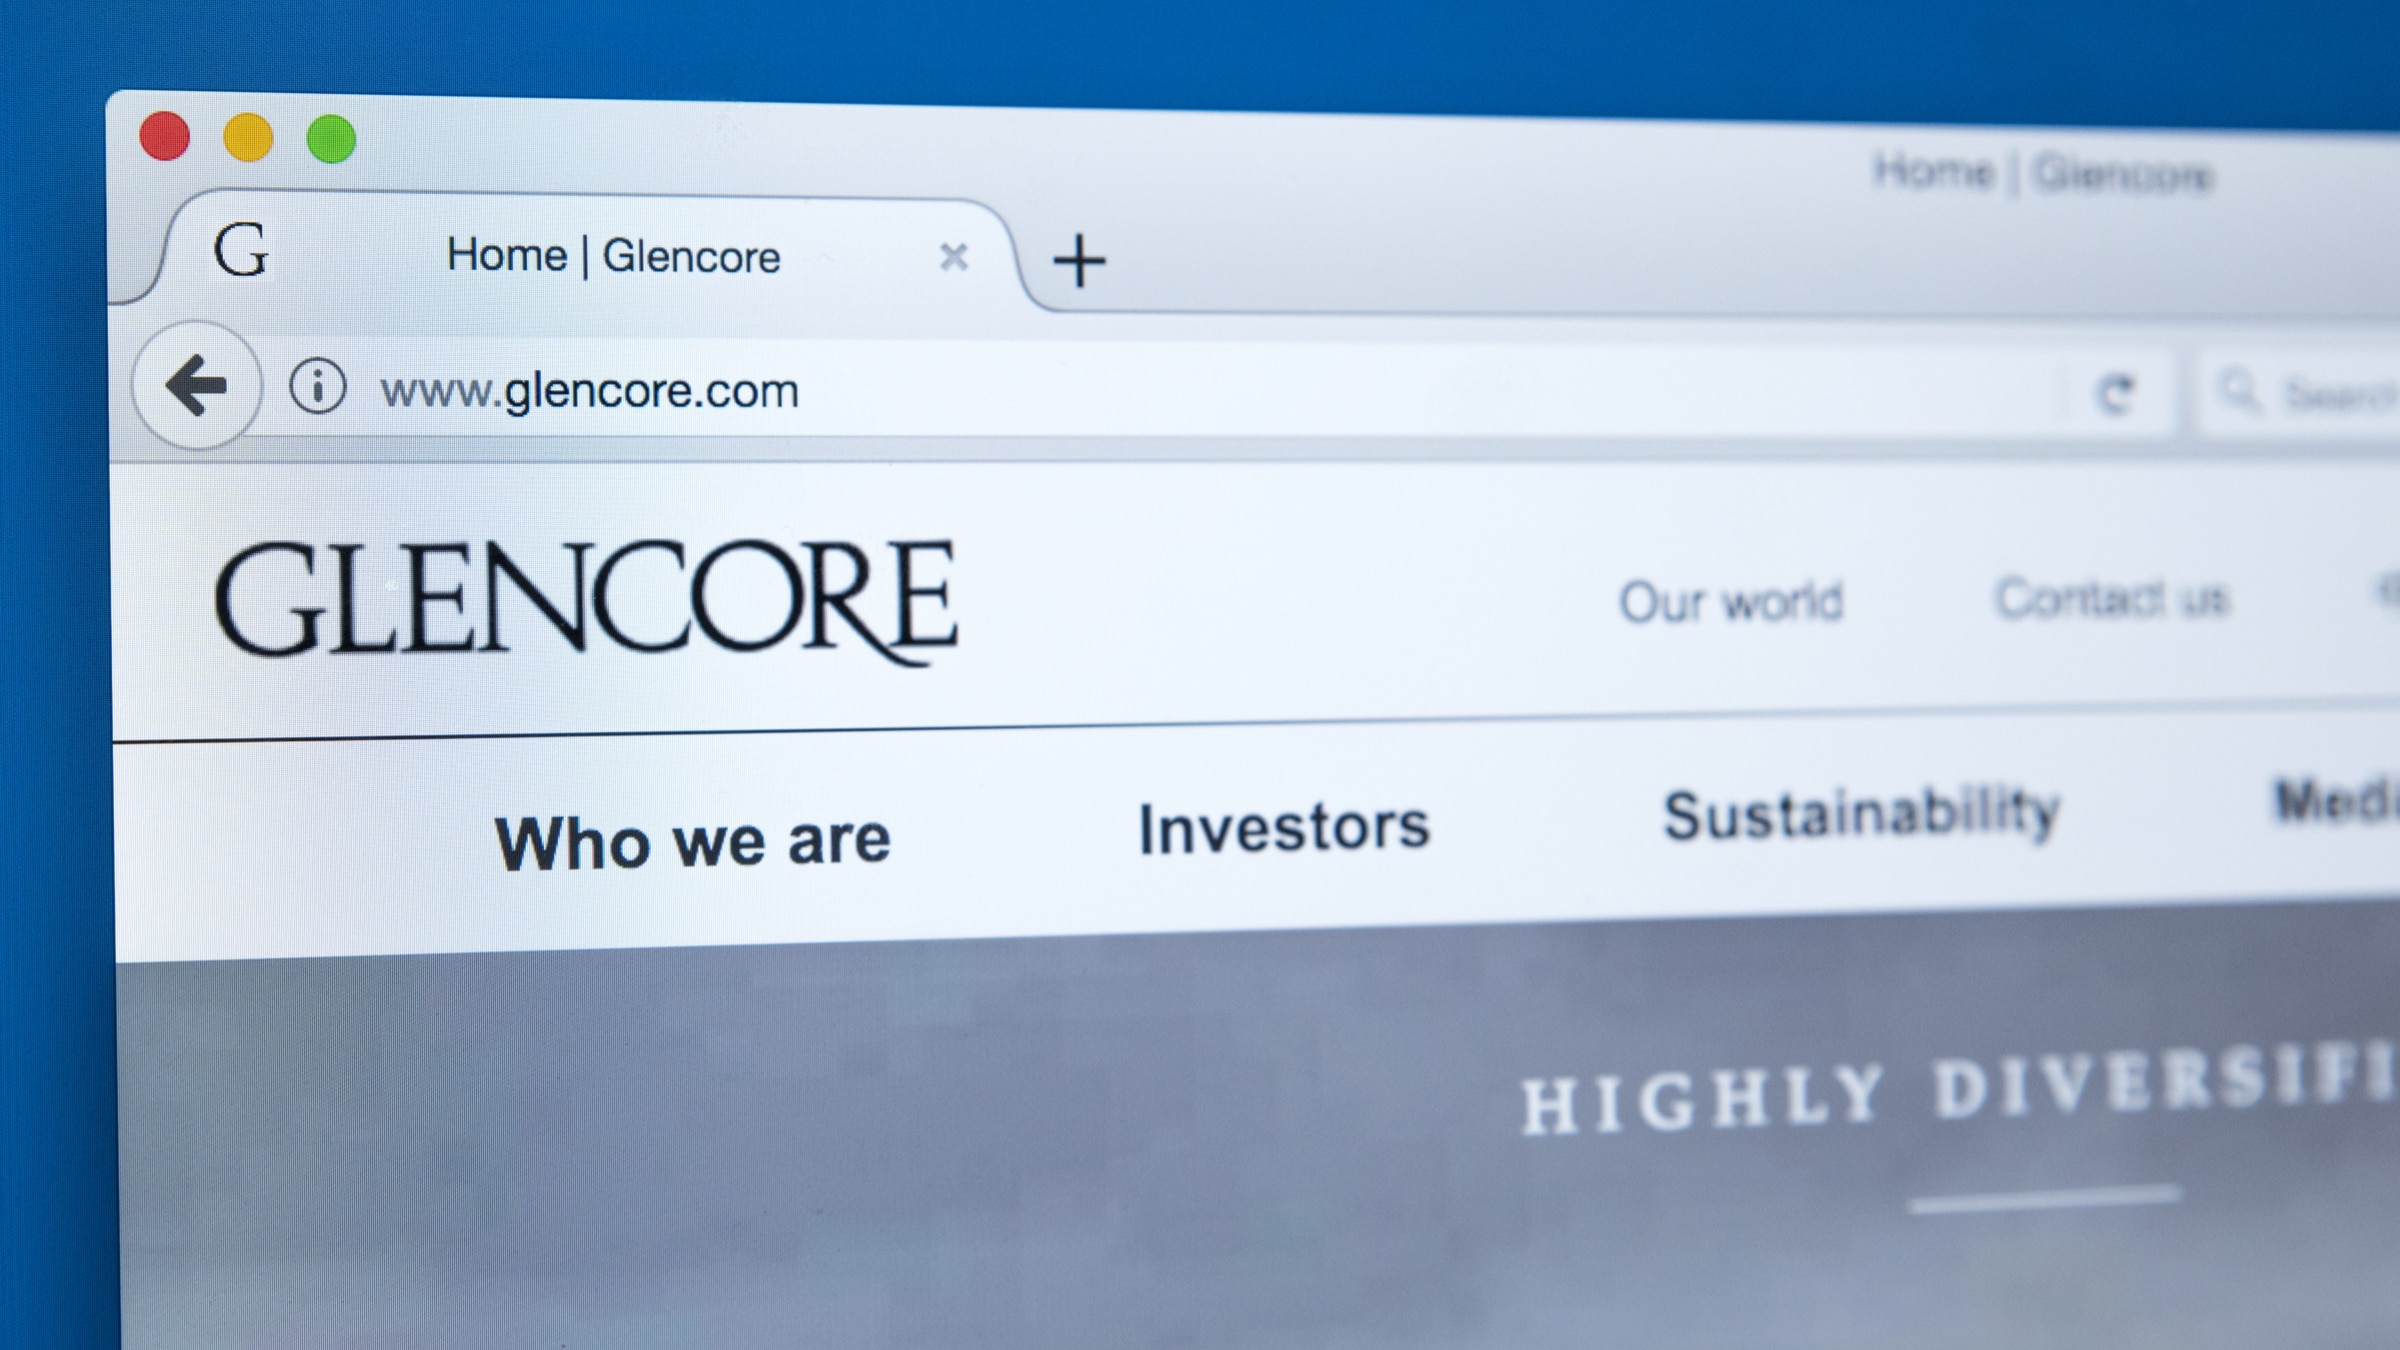 Homepage of the official website for Glencore Plc